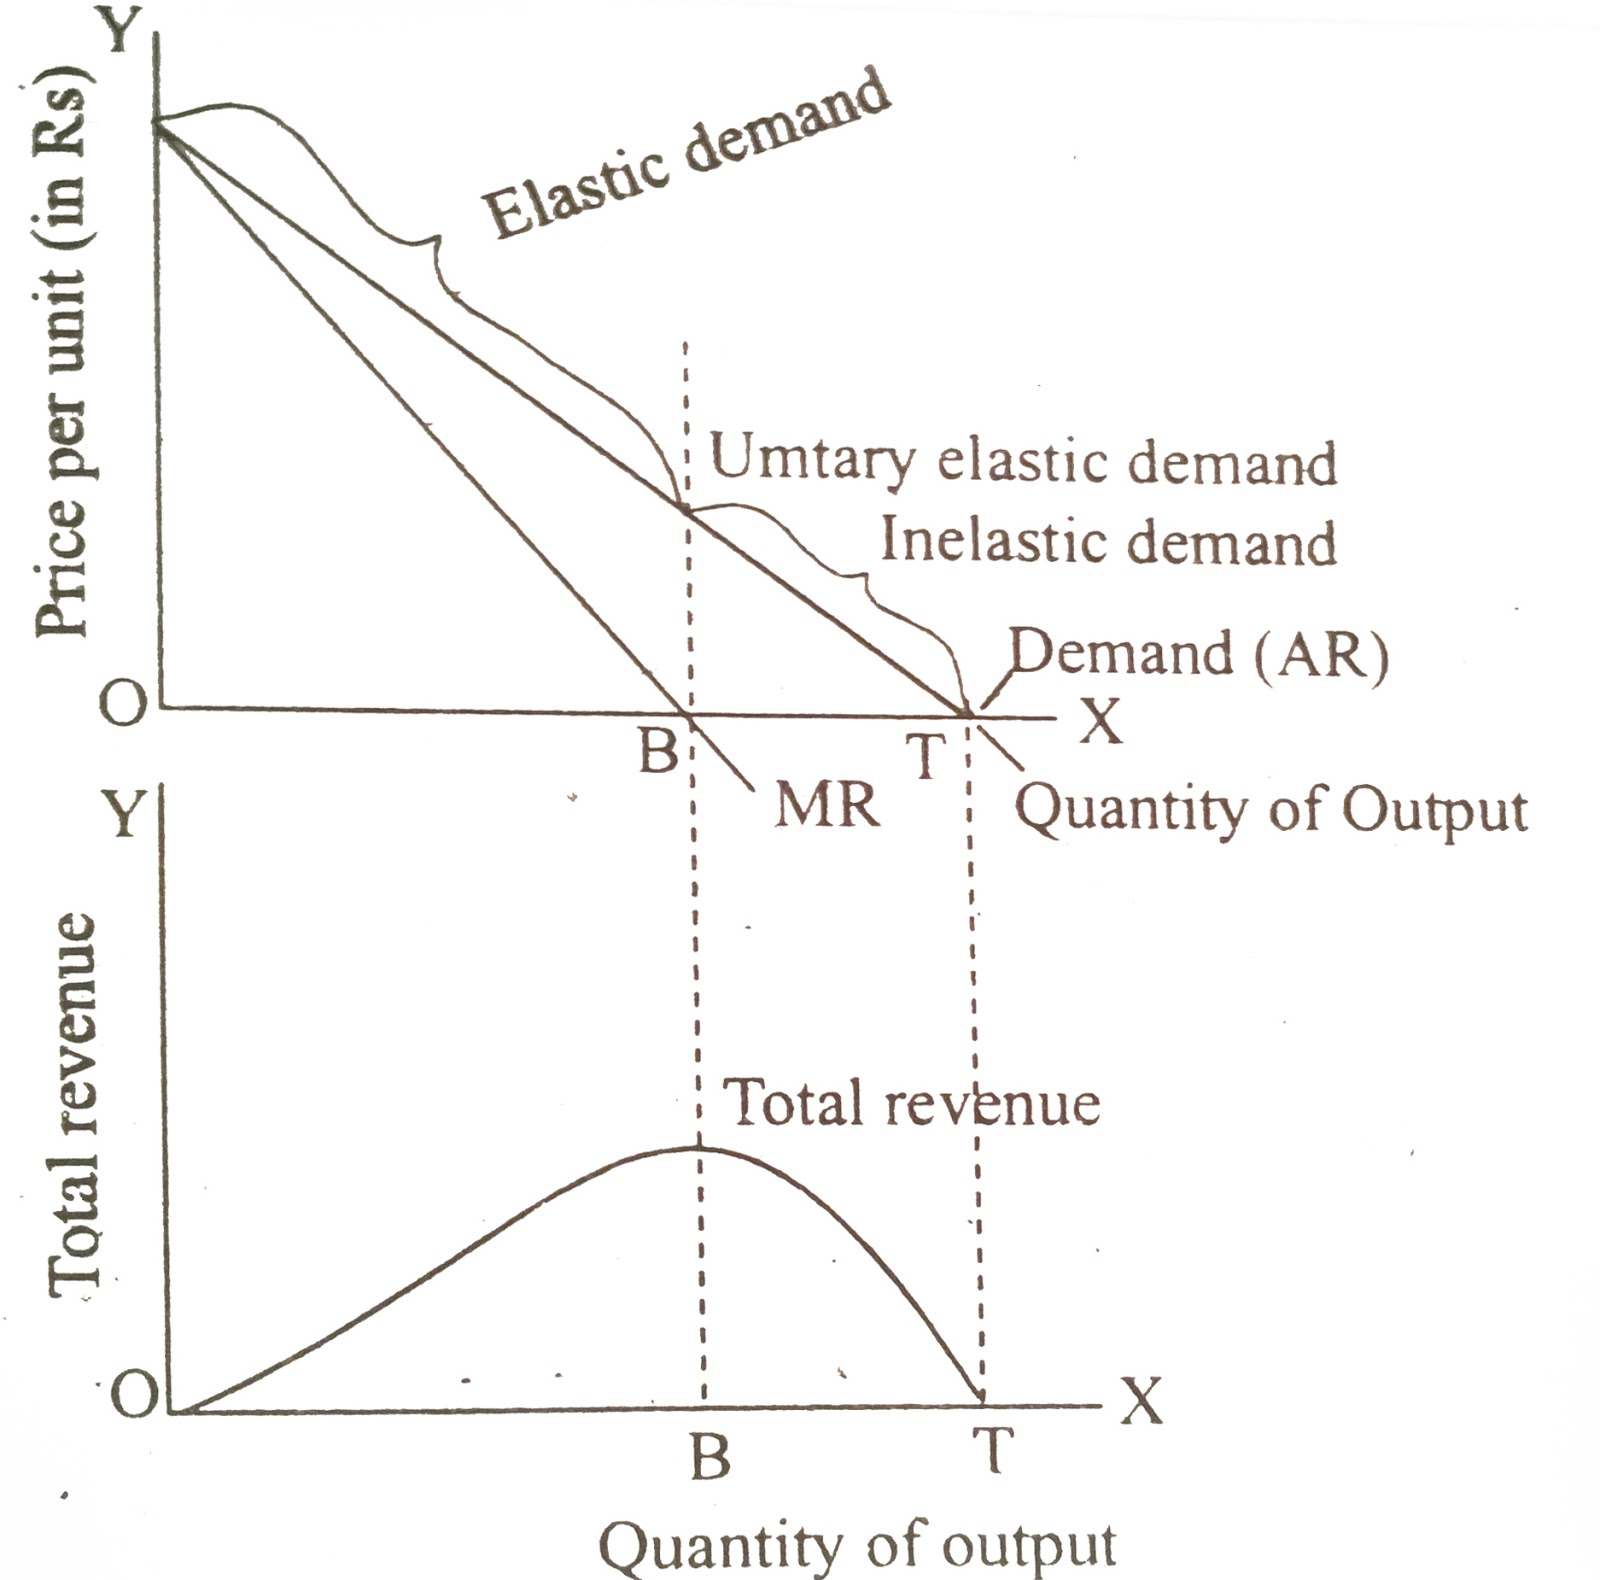 medium resolution of the relations among tr mr and price elasticity of demand are reviewed in the figure the top half of the diagram shows a liner demand or ar curve and a